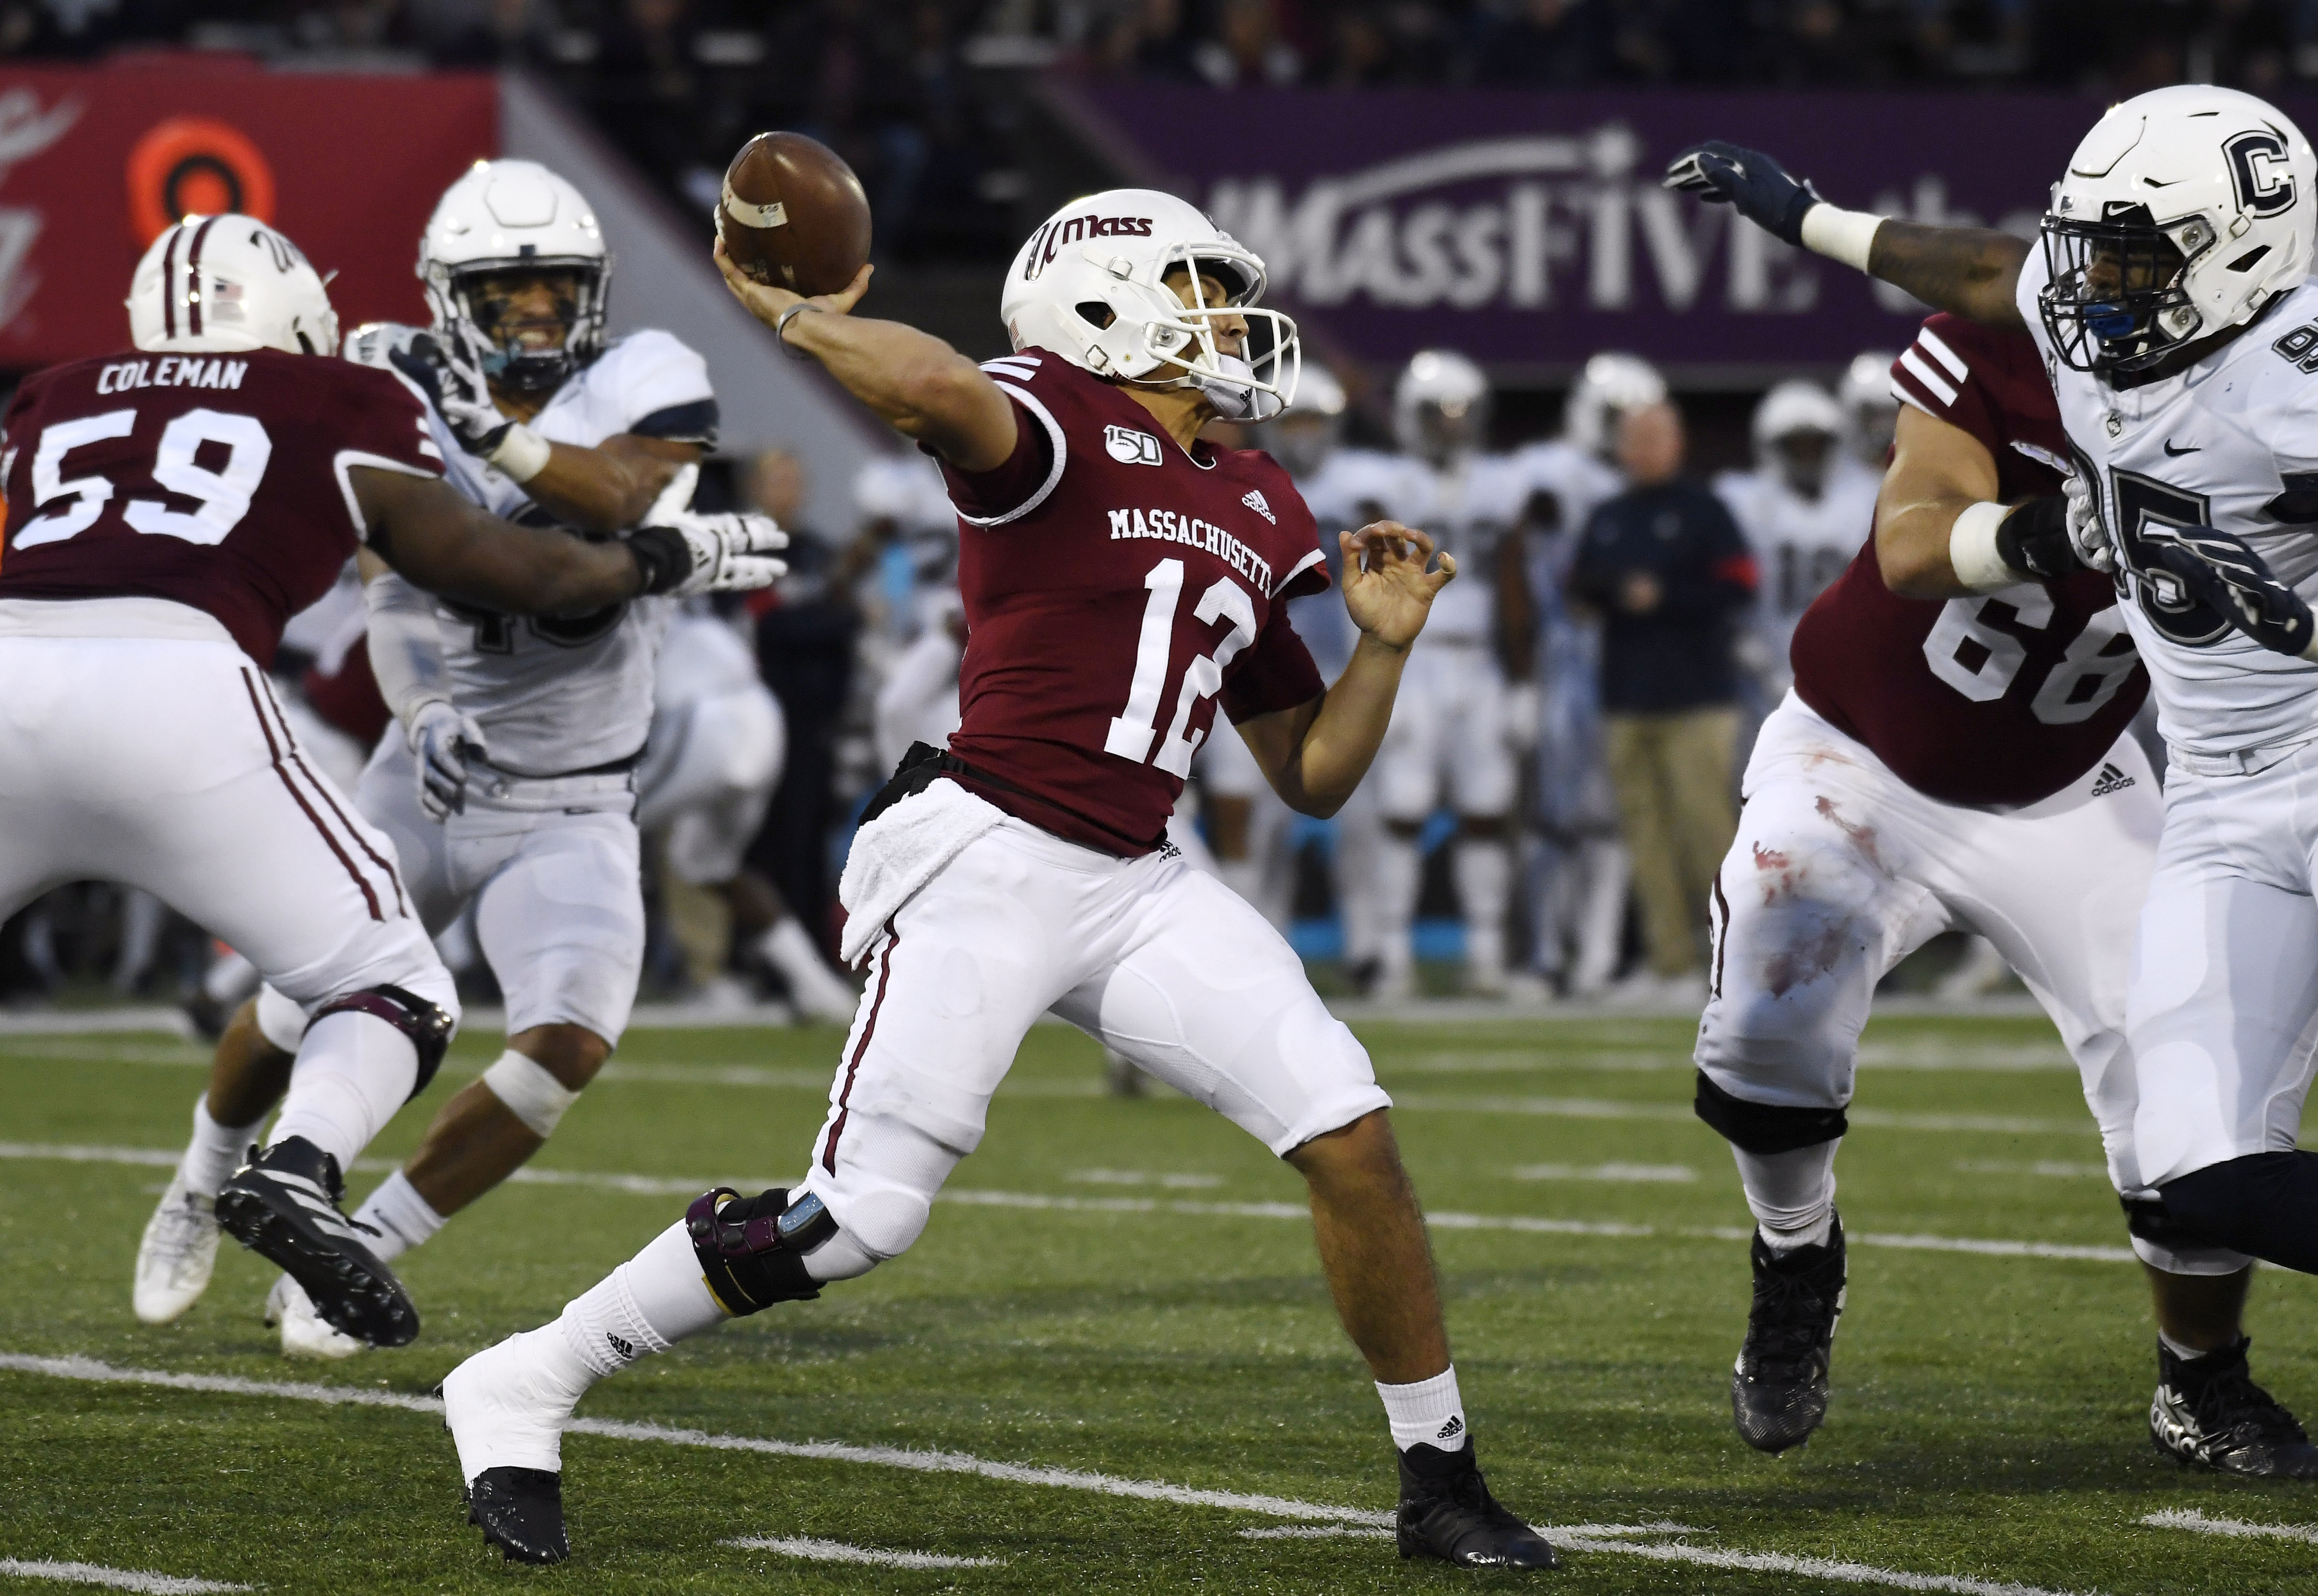 Umass Hopes Decision To Play Football Will Kickstart Desperately Needed Drive Toward Relevance And Riches The Boston Globe Synonyms, crossword answers and other related words for desperate. 2